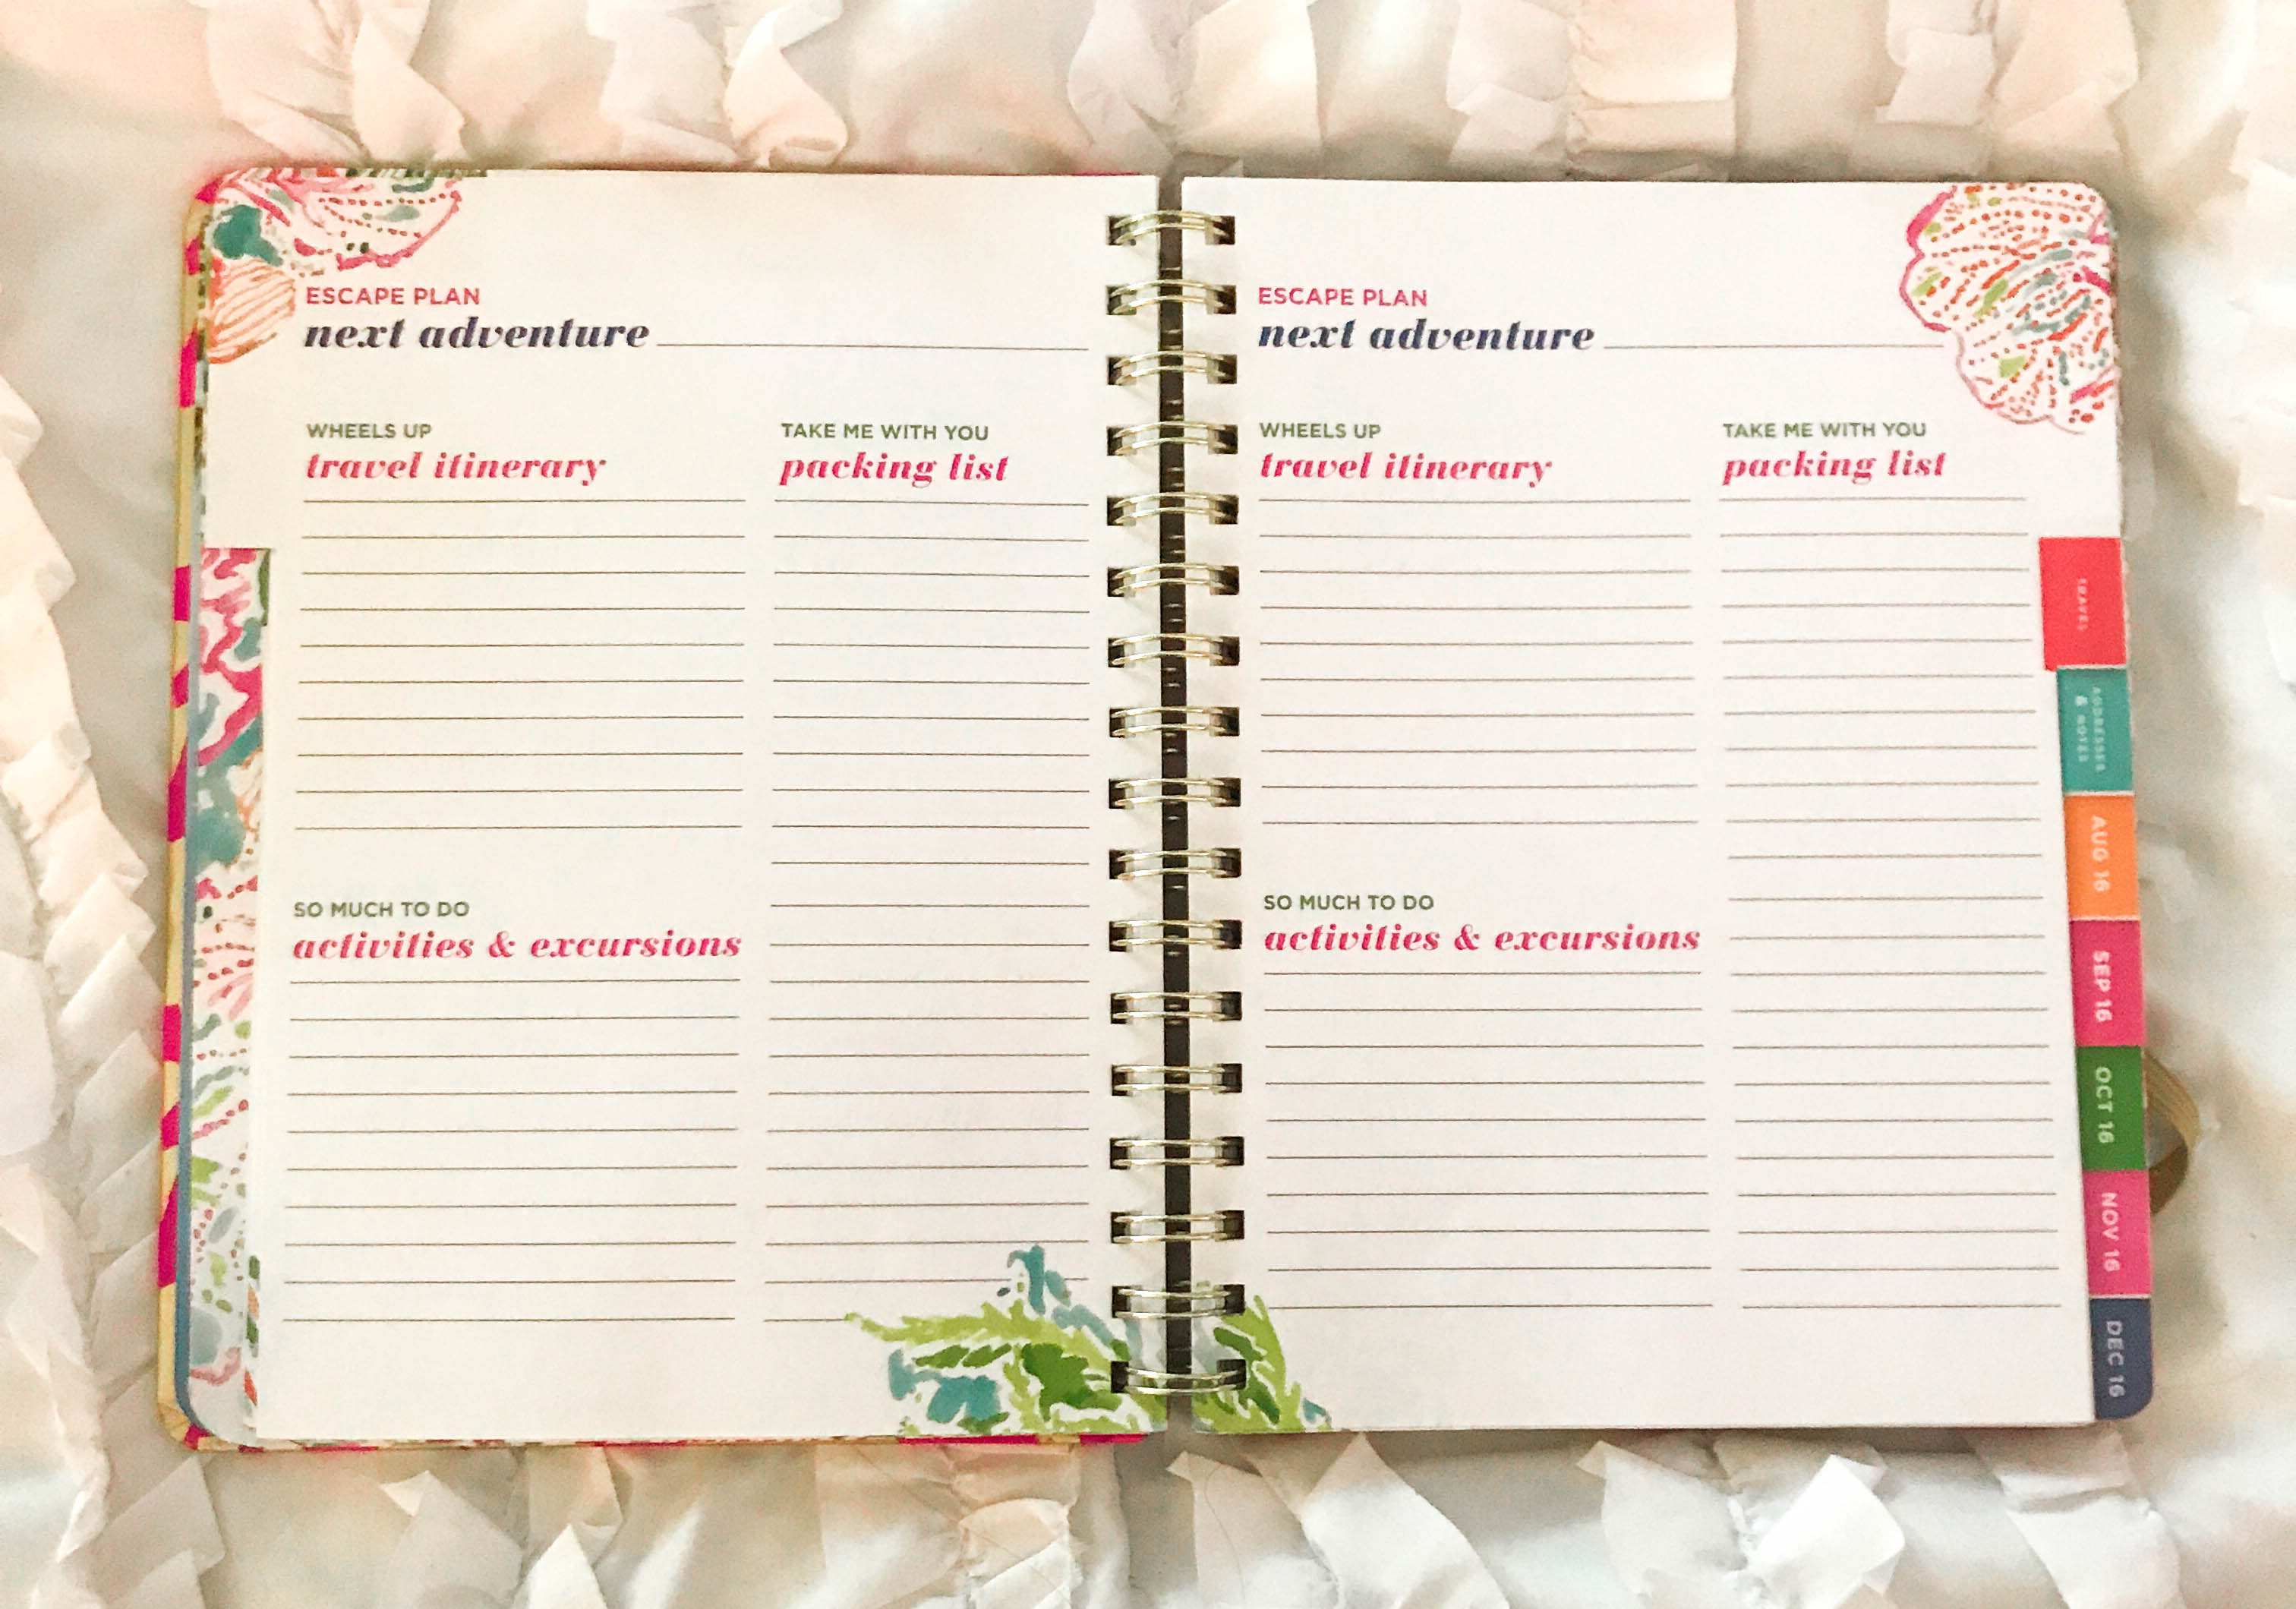 lilly pulitzer tusk in sun agenda planner organization stationary compared to shop ban.do kate spade vacation planning getaway guide floral tropical watercolor